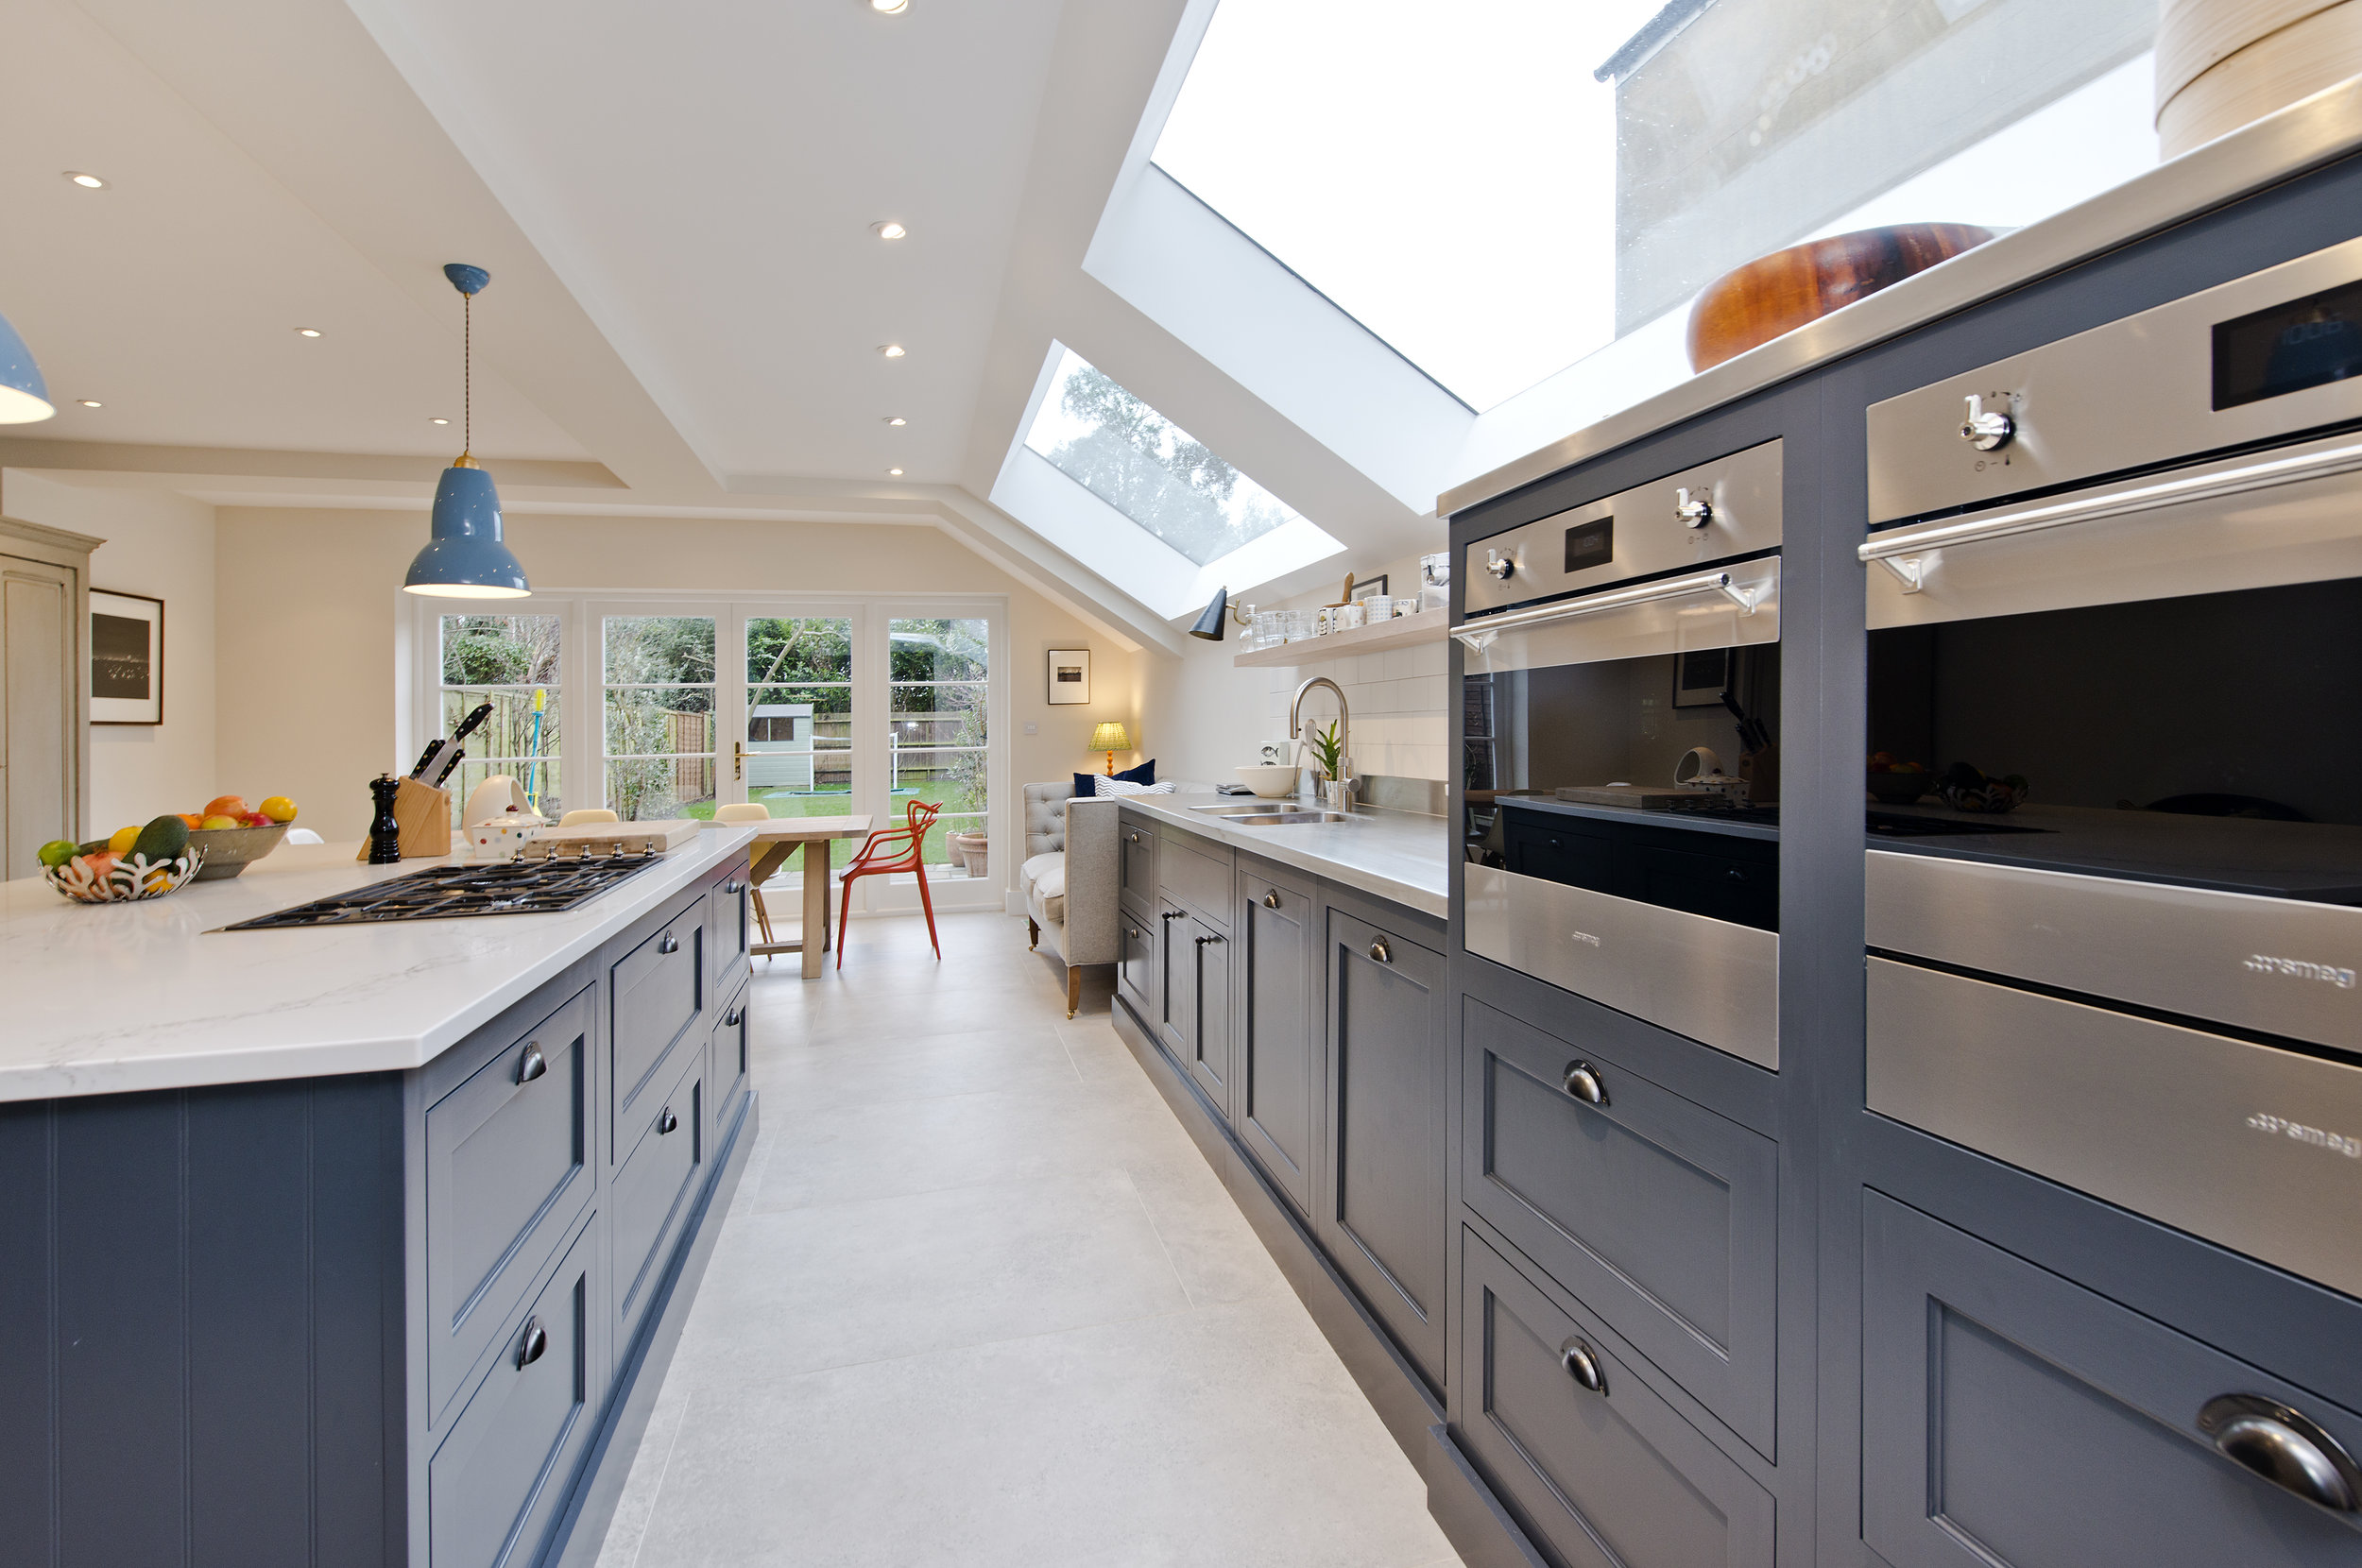 Kitchen Extension, Shepherd's Bush, The Kitchen and Loft Company